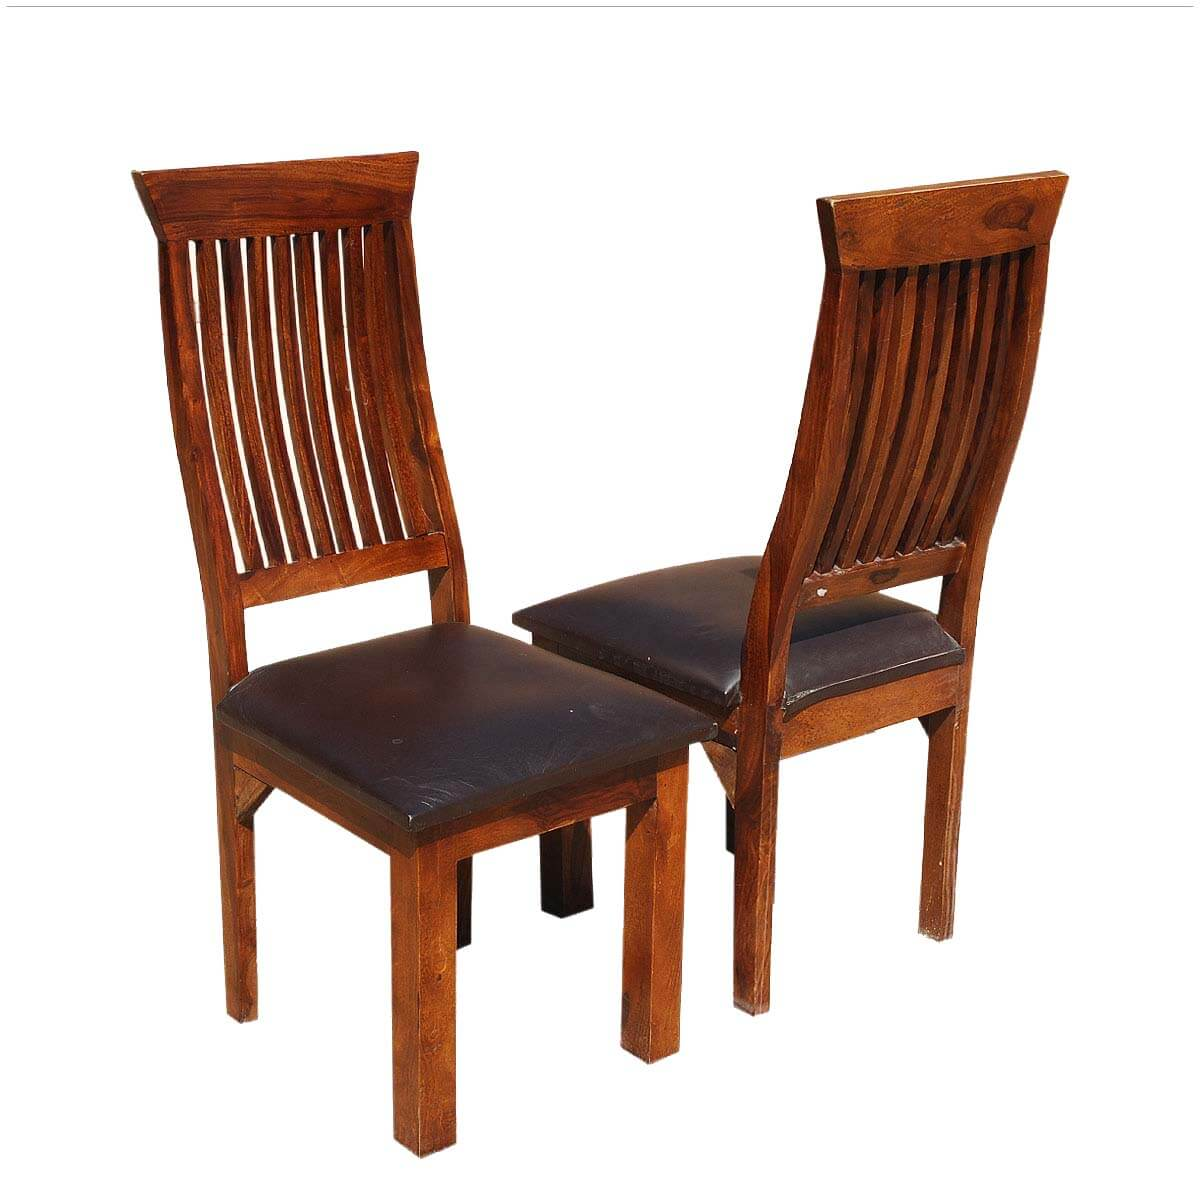 Use the landon dining chair for a sleek modern farmhouse charm in your kitchen or dining room. Ergonomic Solid Wood & Leather Dining Chair Set of 2